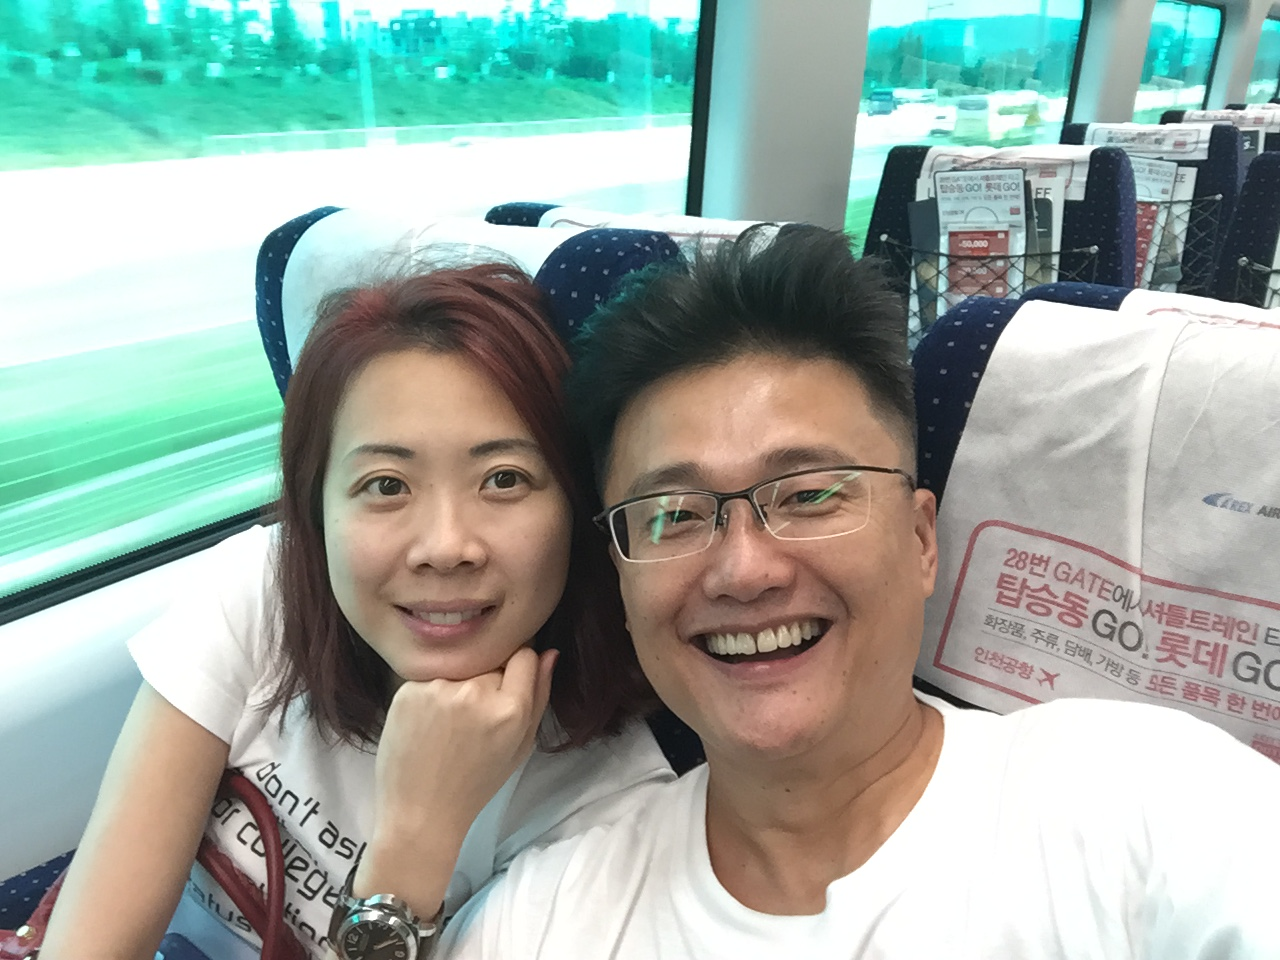 on our way from Incheon Int'l Airport to Seoul Station for our HSR connection to Busan